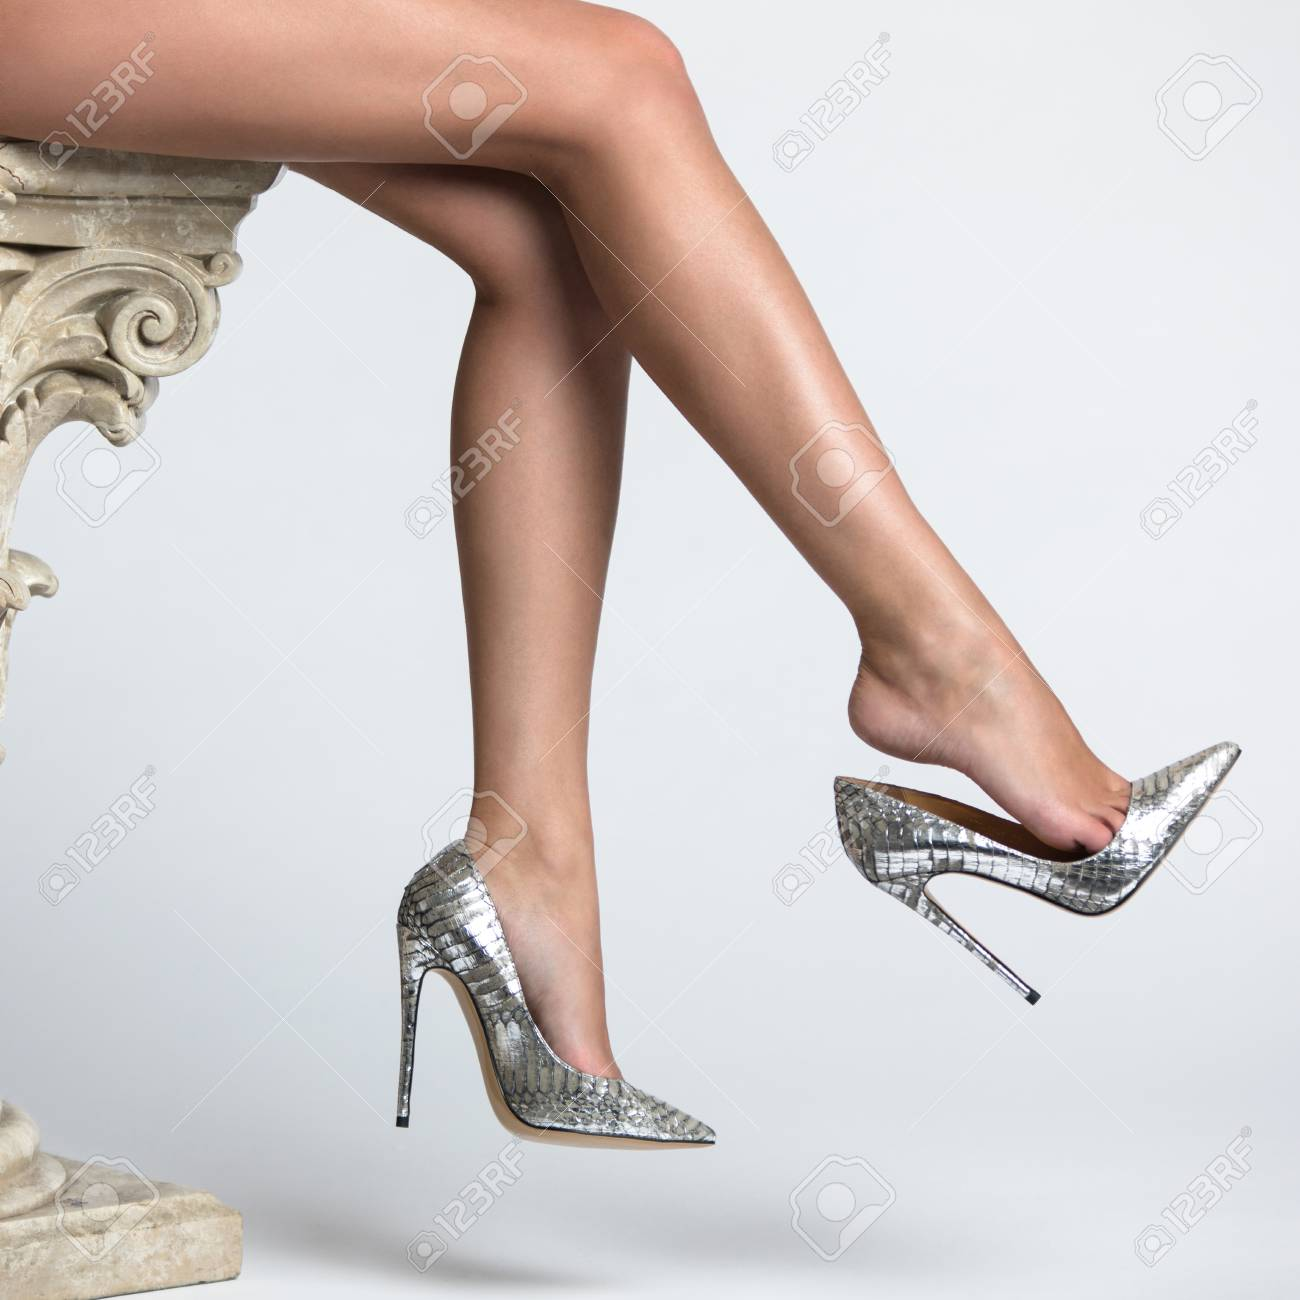 Women In High Heel Shoes